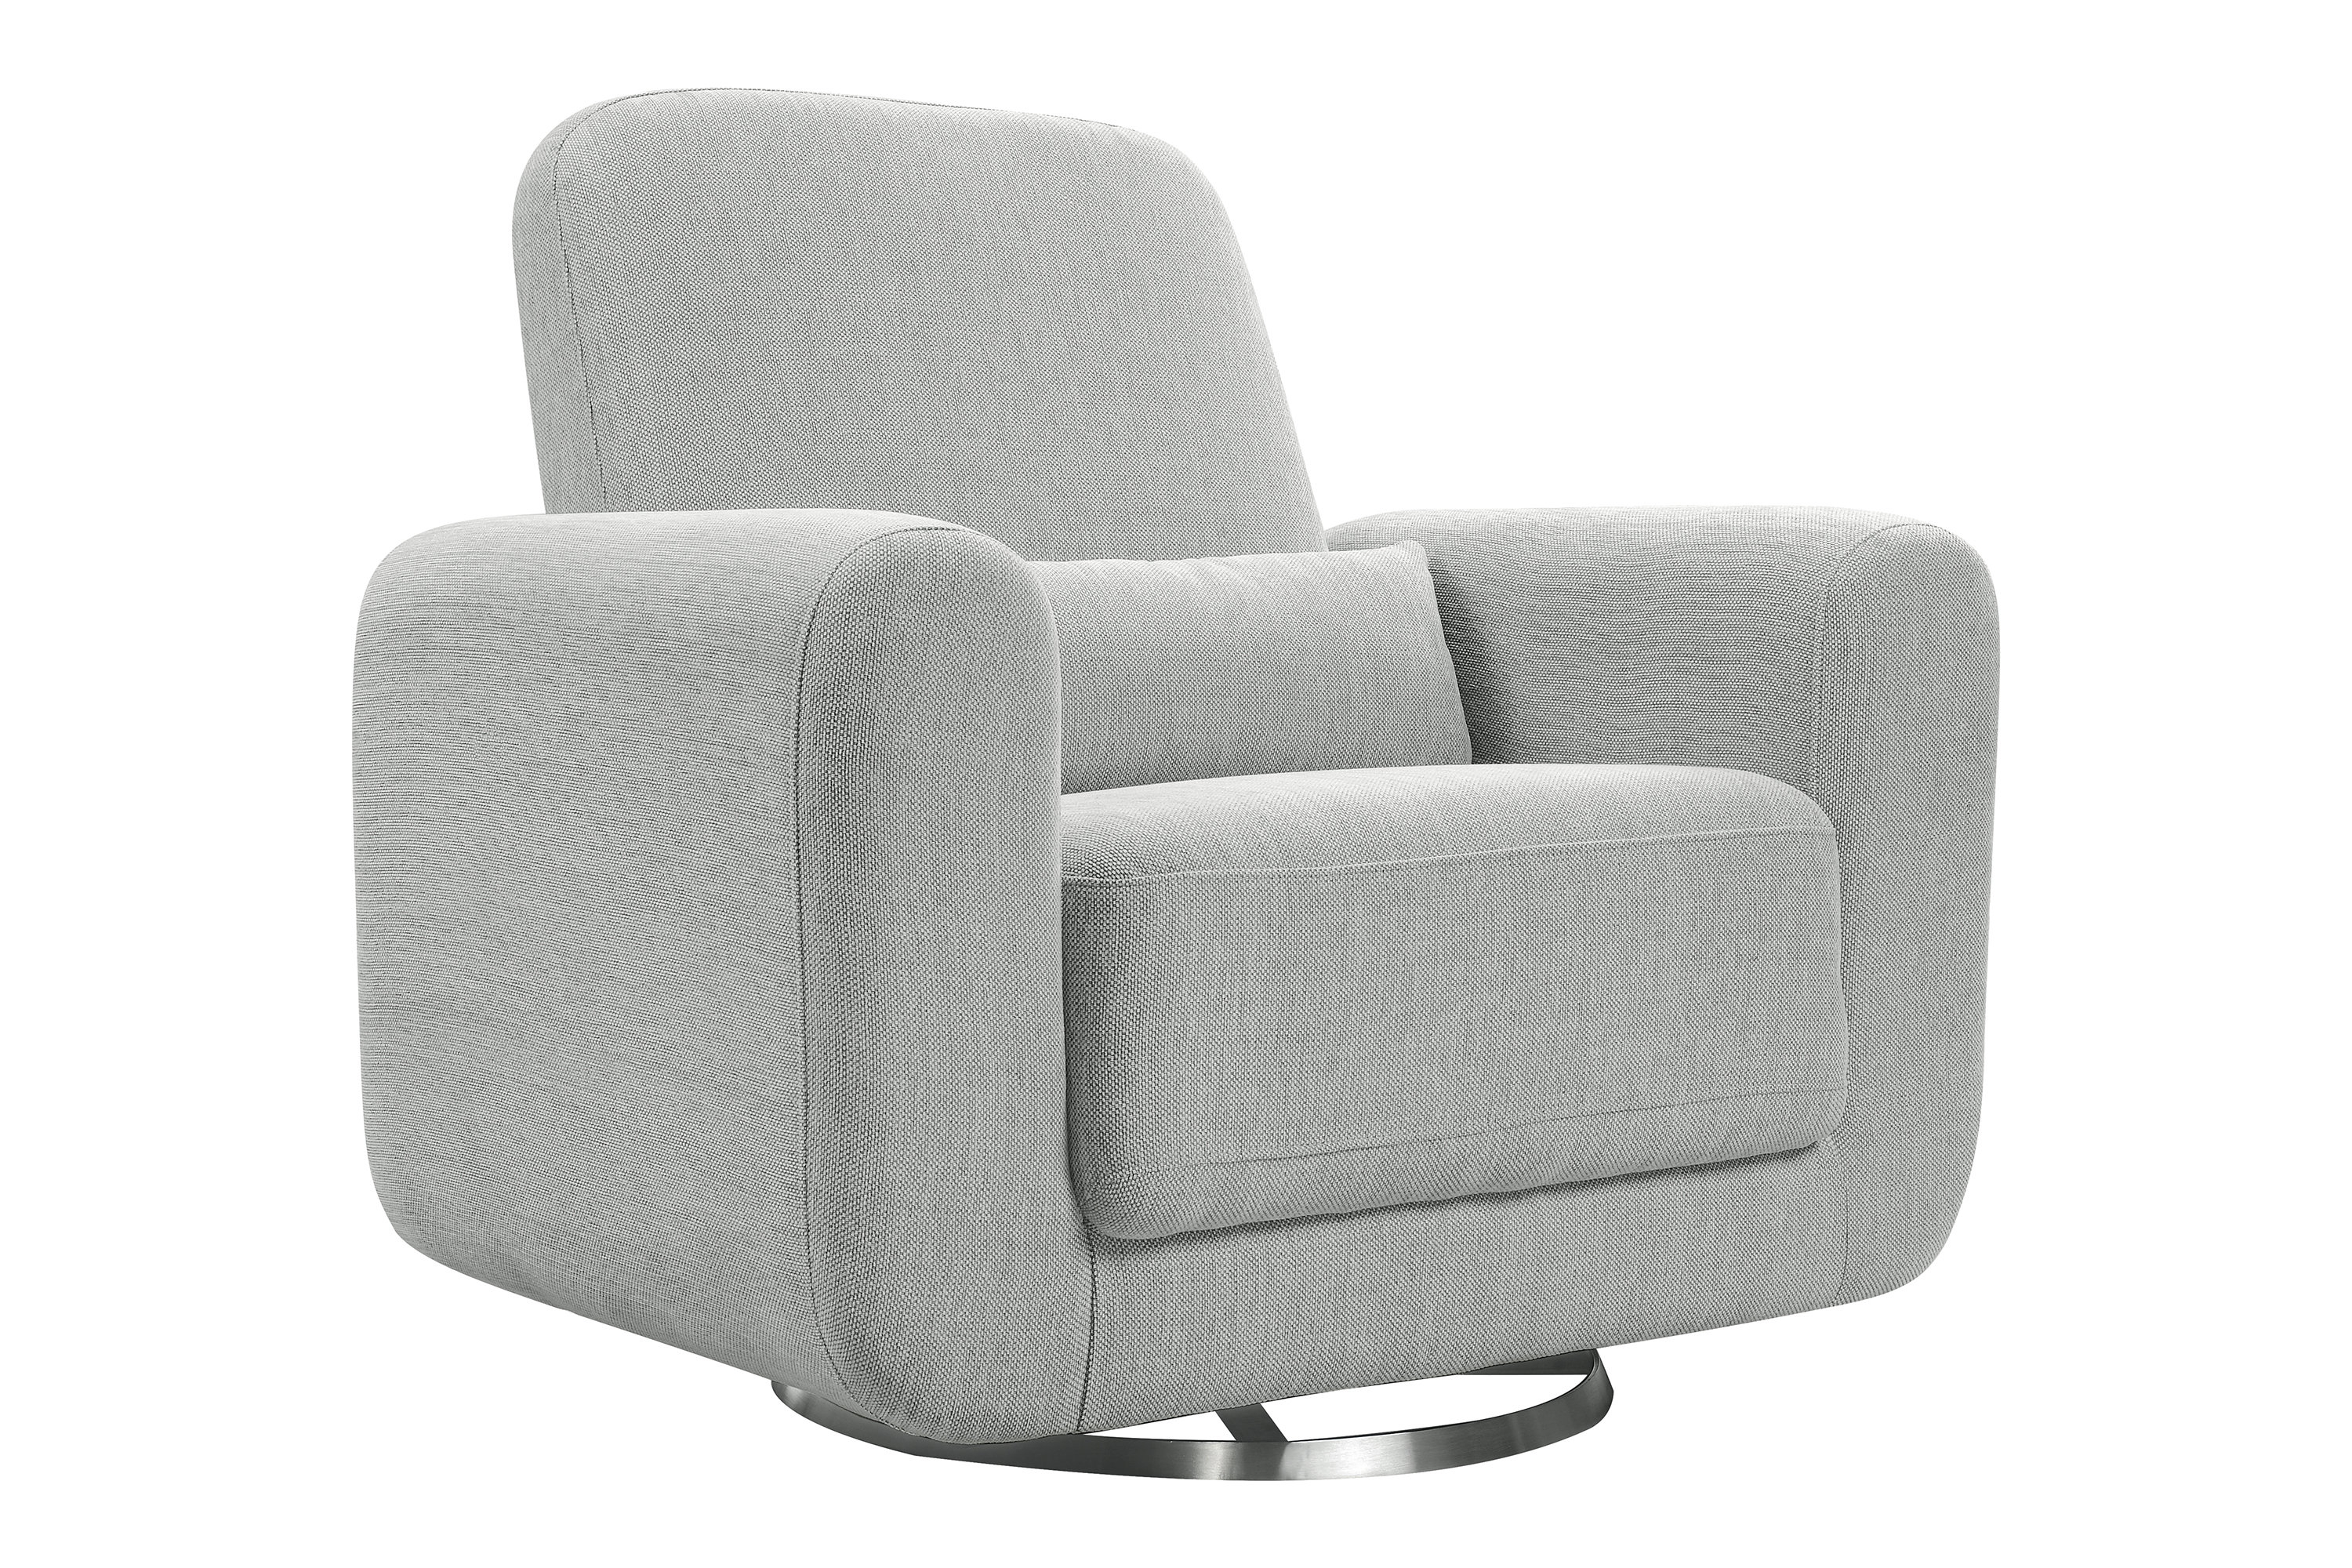 Well Known Mari Swivel Glider Recliners Inside Tuba Swivel Glider & Reviews (View 13 of 20)